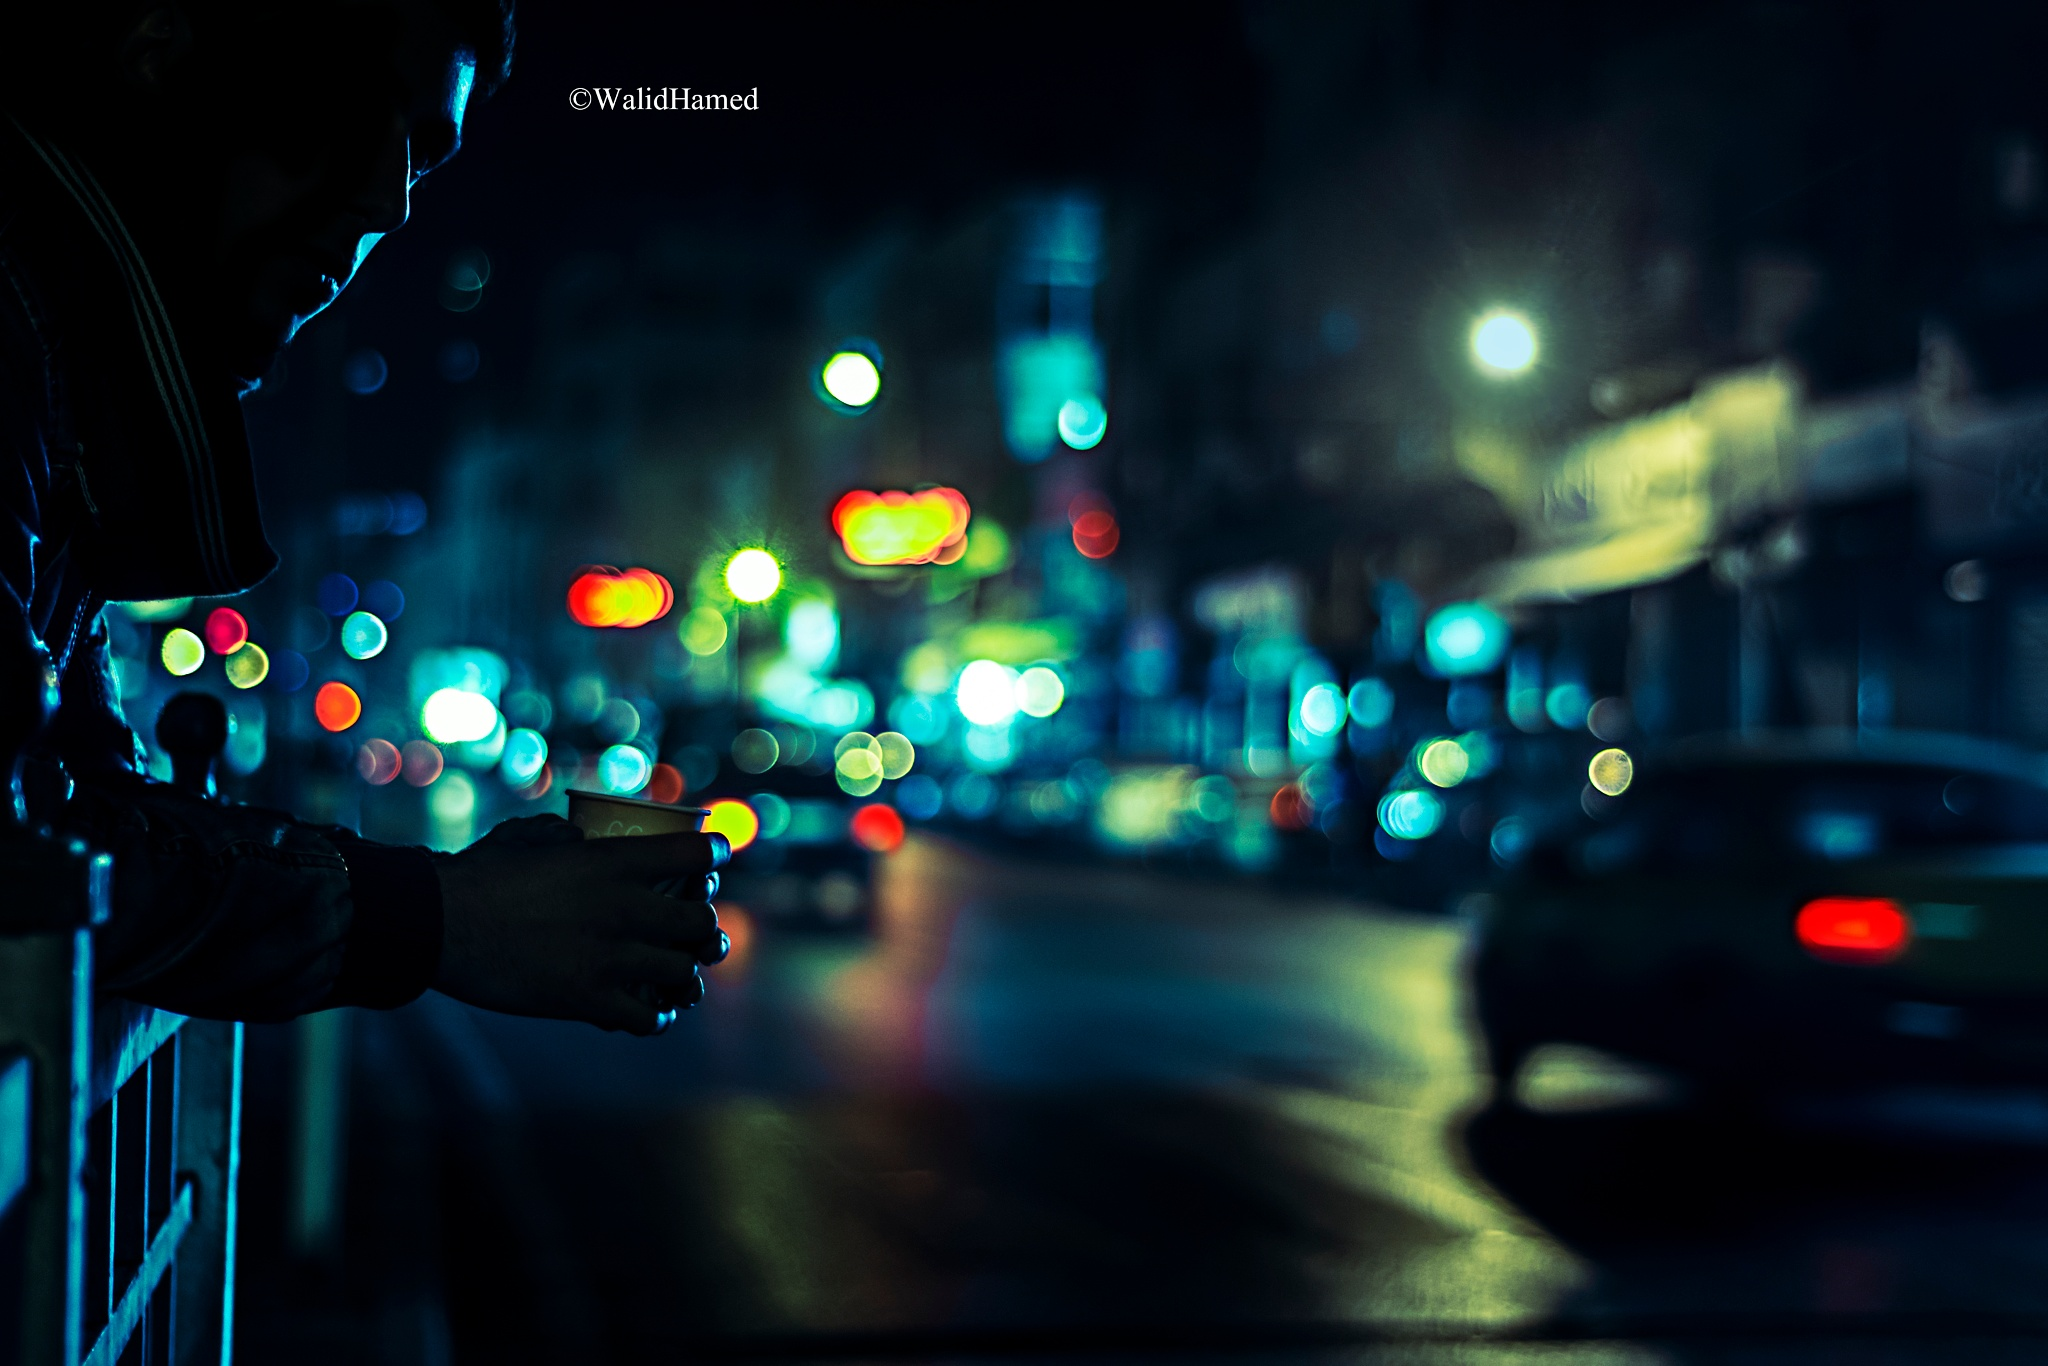 at the mid night  by Walid Hamed